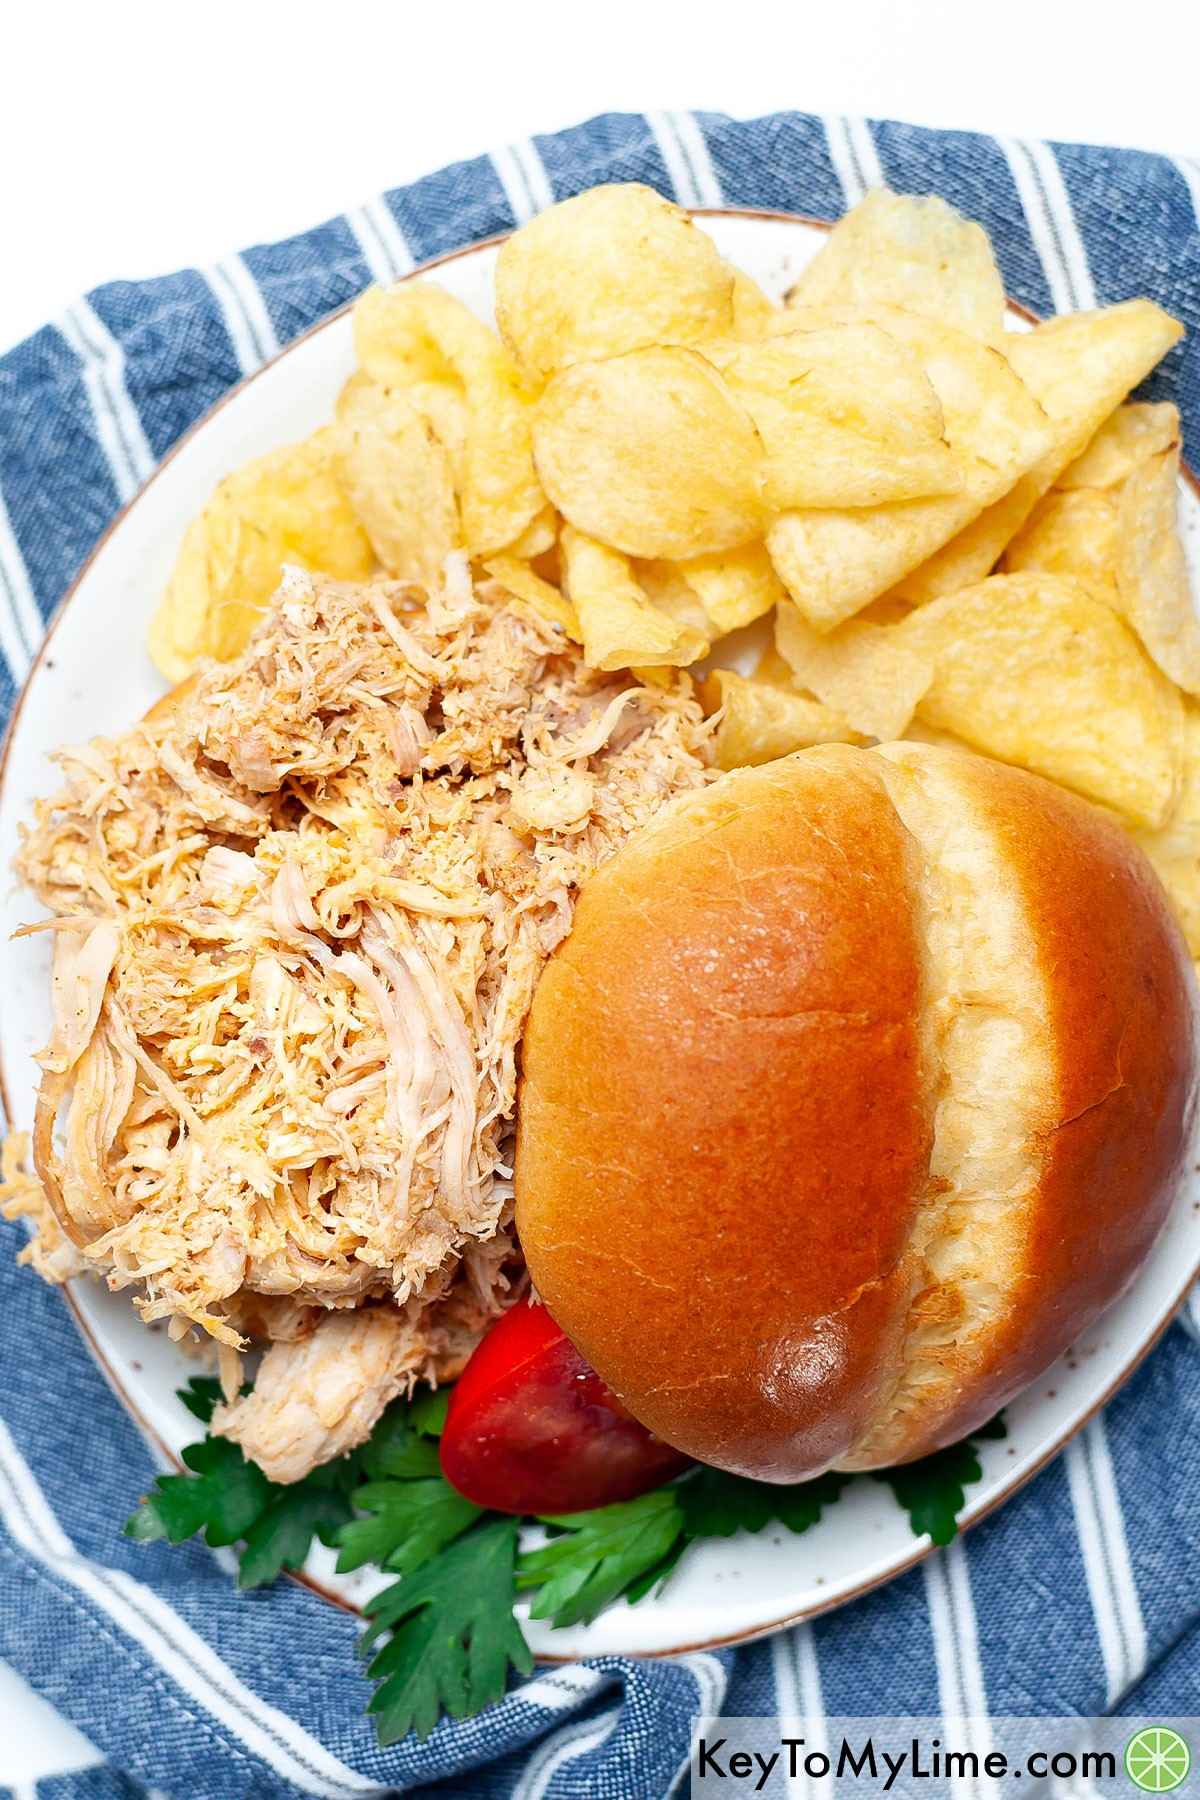 An overhead image of a pulled chicken sandwich on a plate with potato chips.